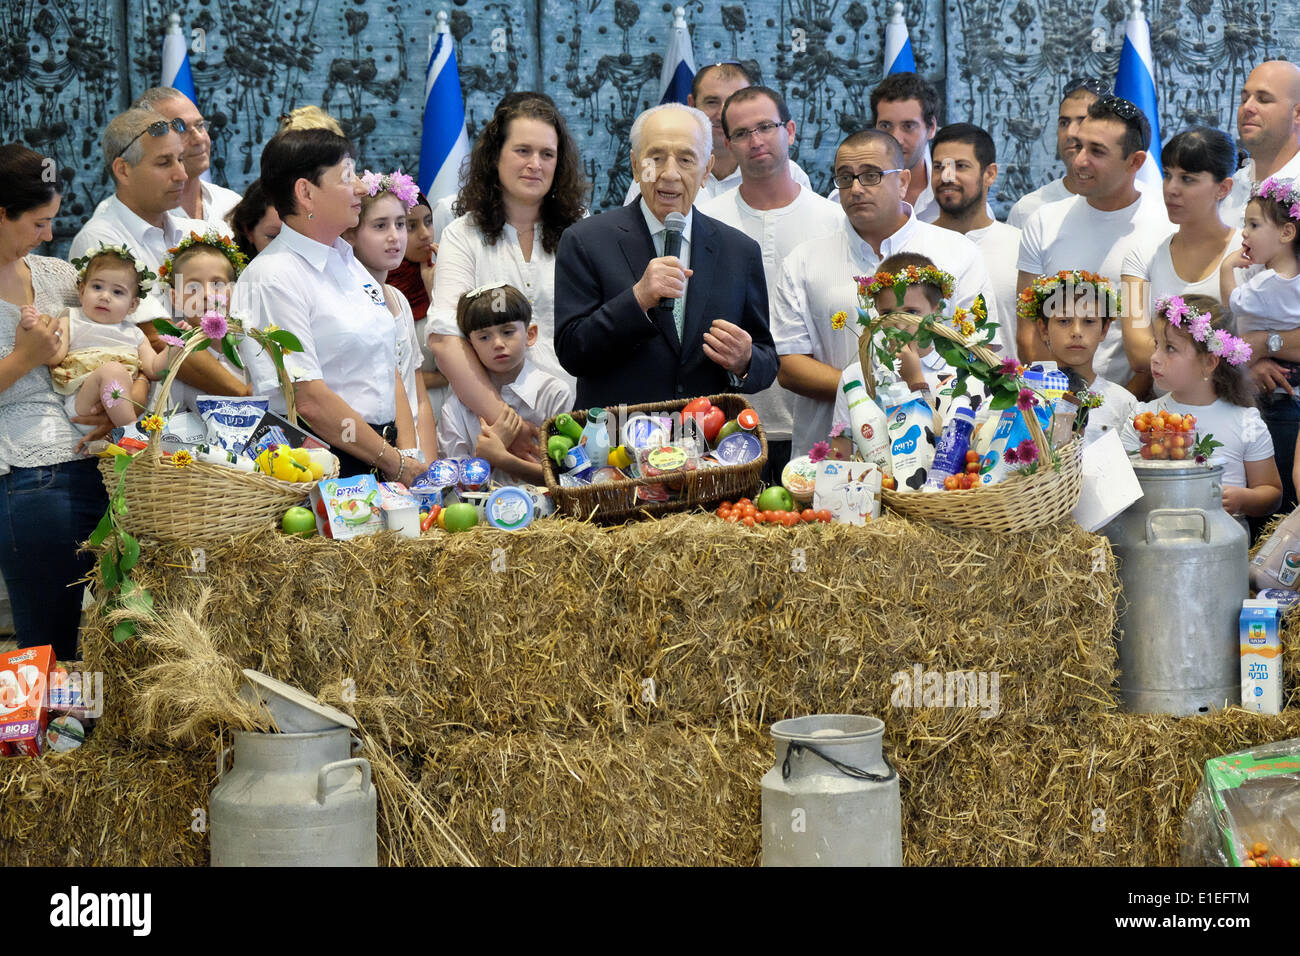 Israel, Jerusalem. 02nd June, 2014. Israeli President SHIMON PERES receives a basket with the best of Israel's dairy products from farmers from across the country. The President hosted a Bikkurim Festival for the Shavuot holiday, celebrating the giving of the Torah at Mt. Sinai. Also referred to as the Harvest Festival, in ancient times Jewish farmers brought their first fruits of the season to the Temple in Jerusalem as offerings. Credit:  Nir Alon/Alamy Live News - Stock Image